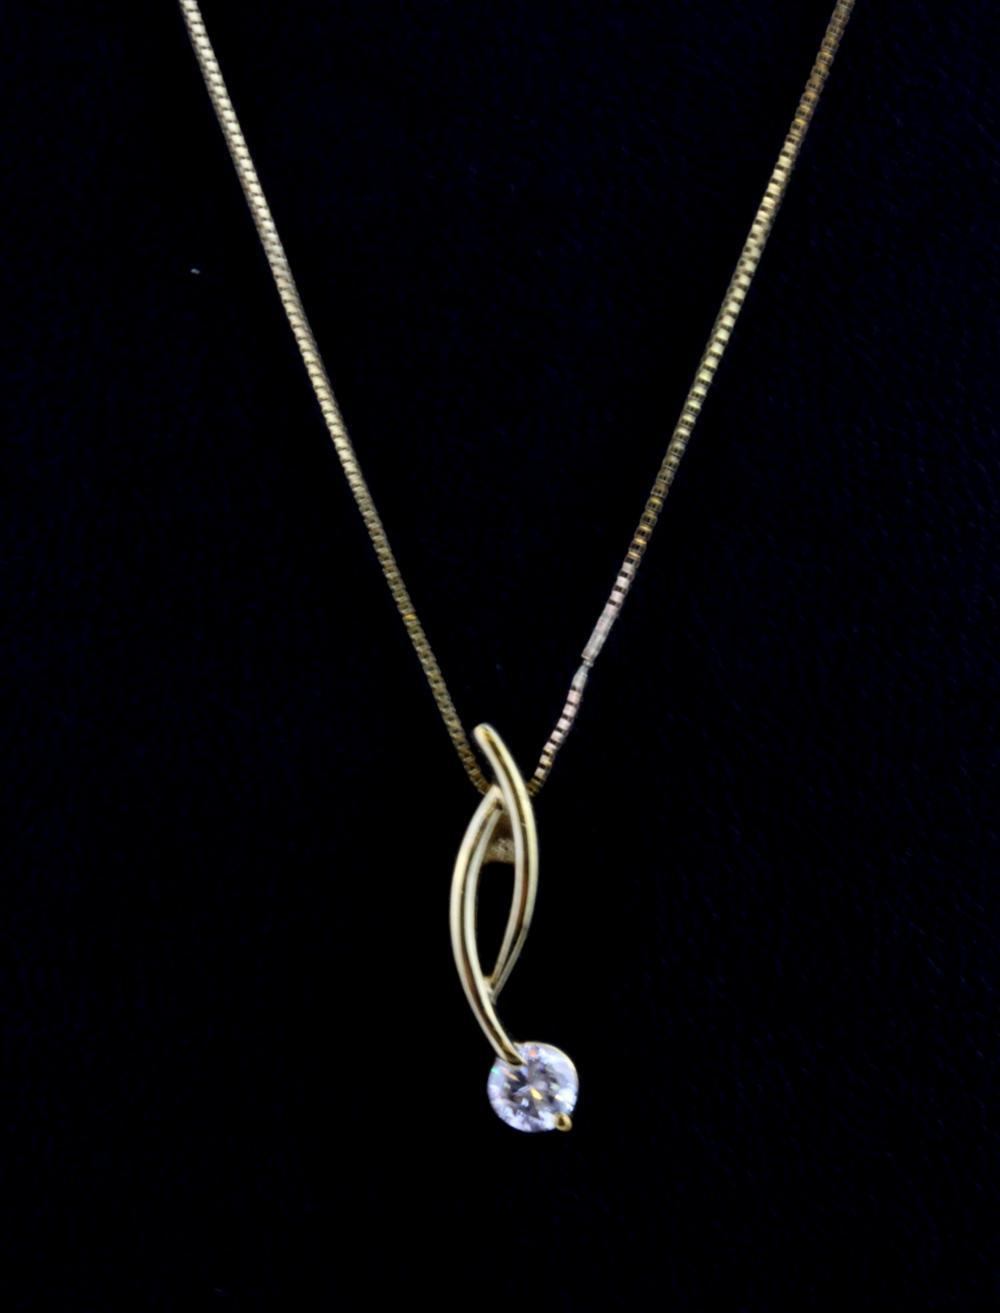 A 9ct yellow gold stone set pendant and chain, L. 2cm.